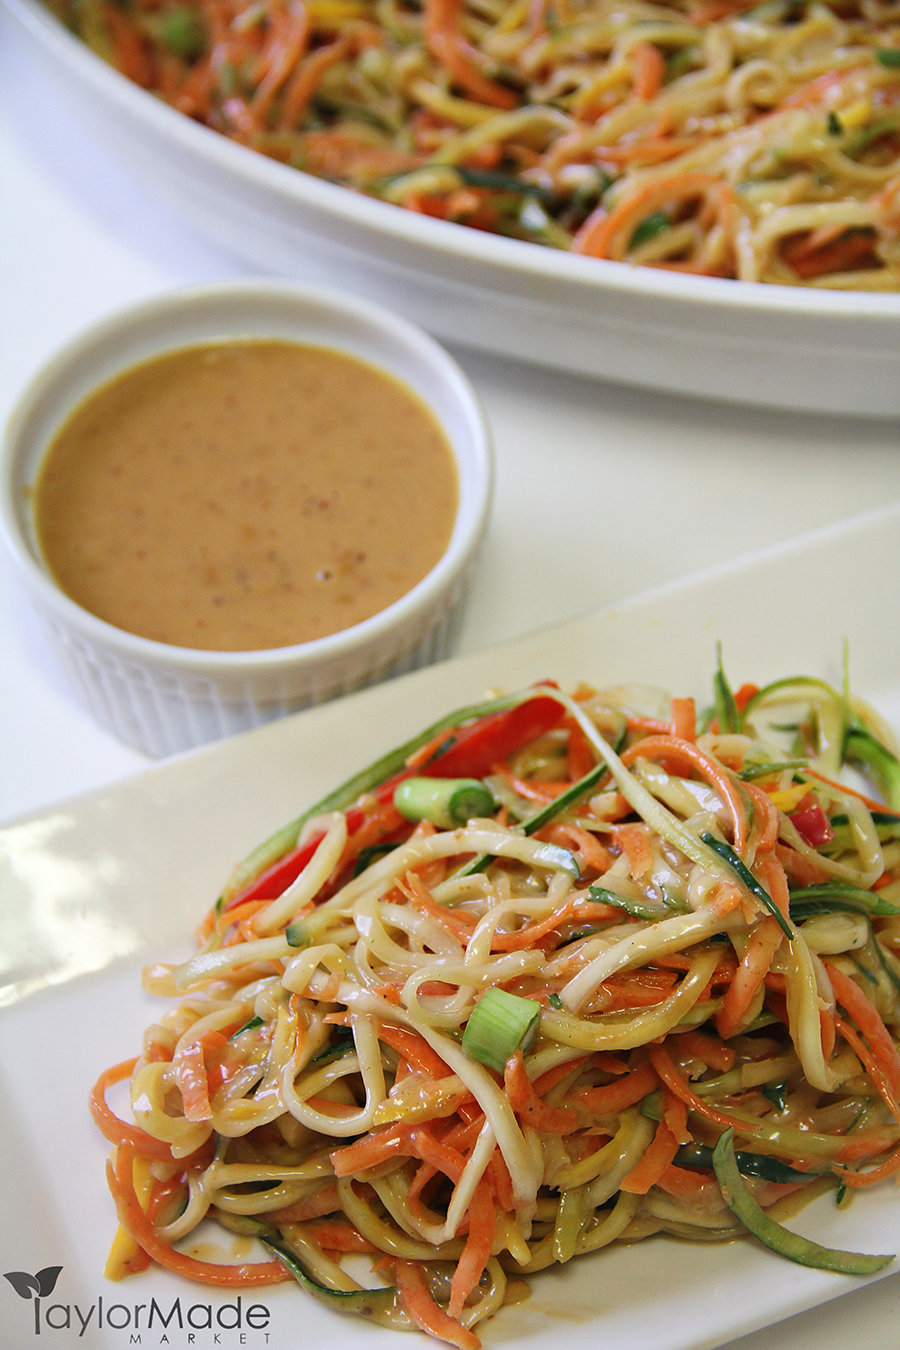 Vegetable Noodle Salad Peanut Sauce upclose vertical